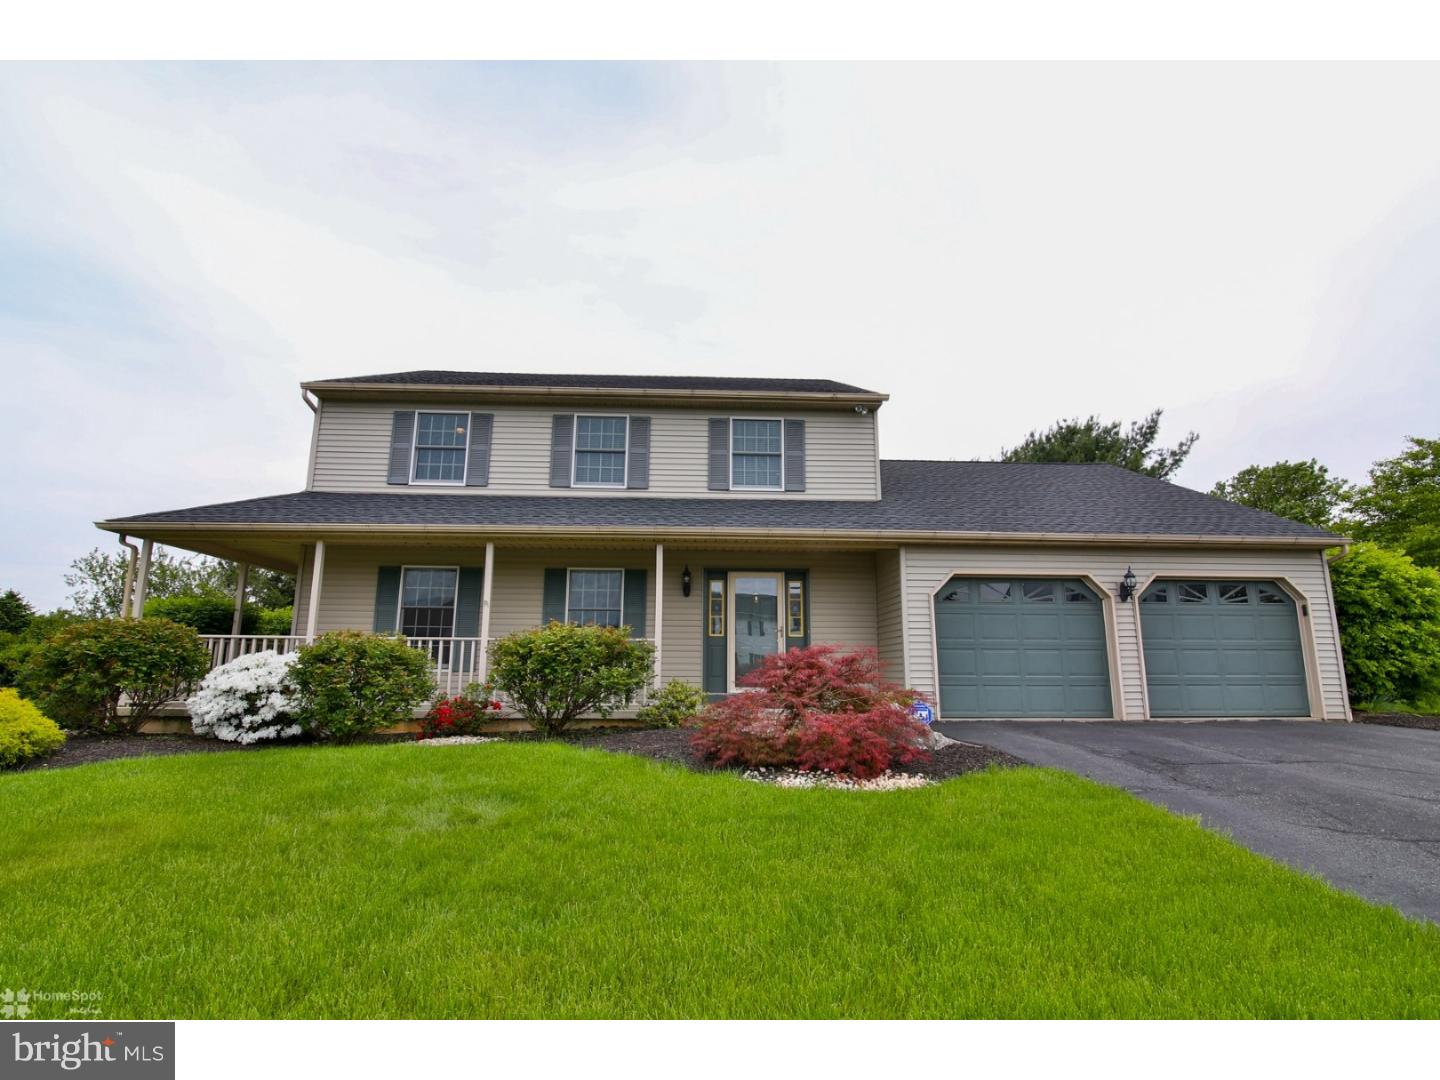 1169 WELLINGTON CIRCLE, WHITEHALL, PA 18059